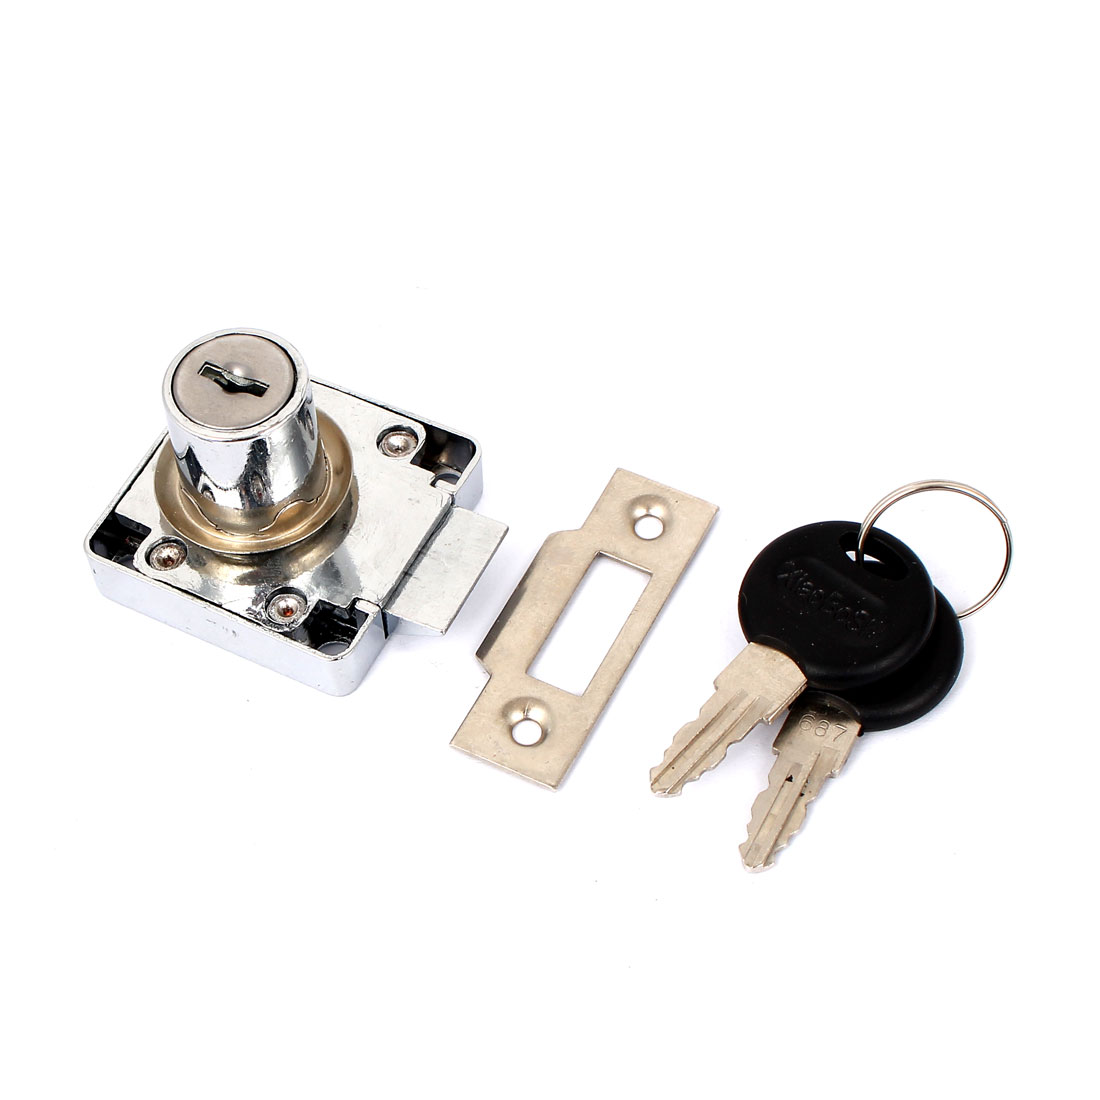 Drawer Cupboard Metal Deadbolt Square Locking Lock with 2 Keys